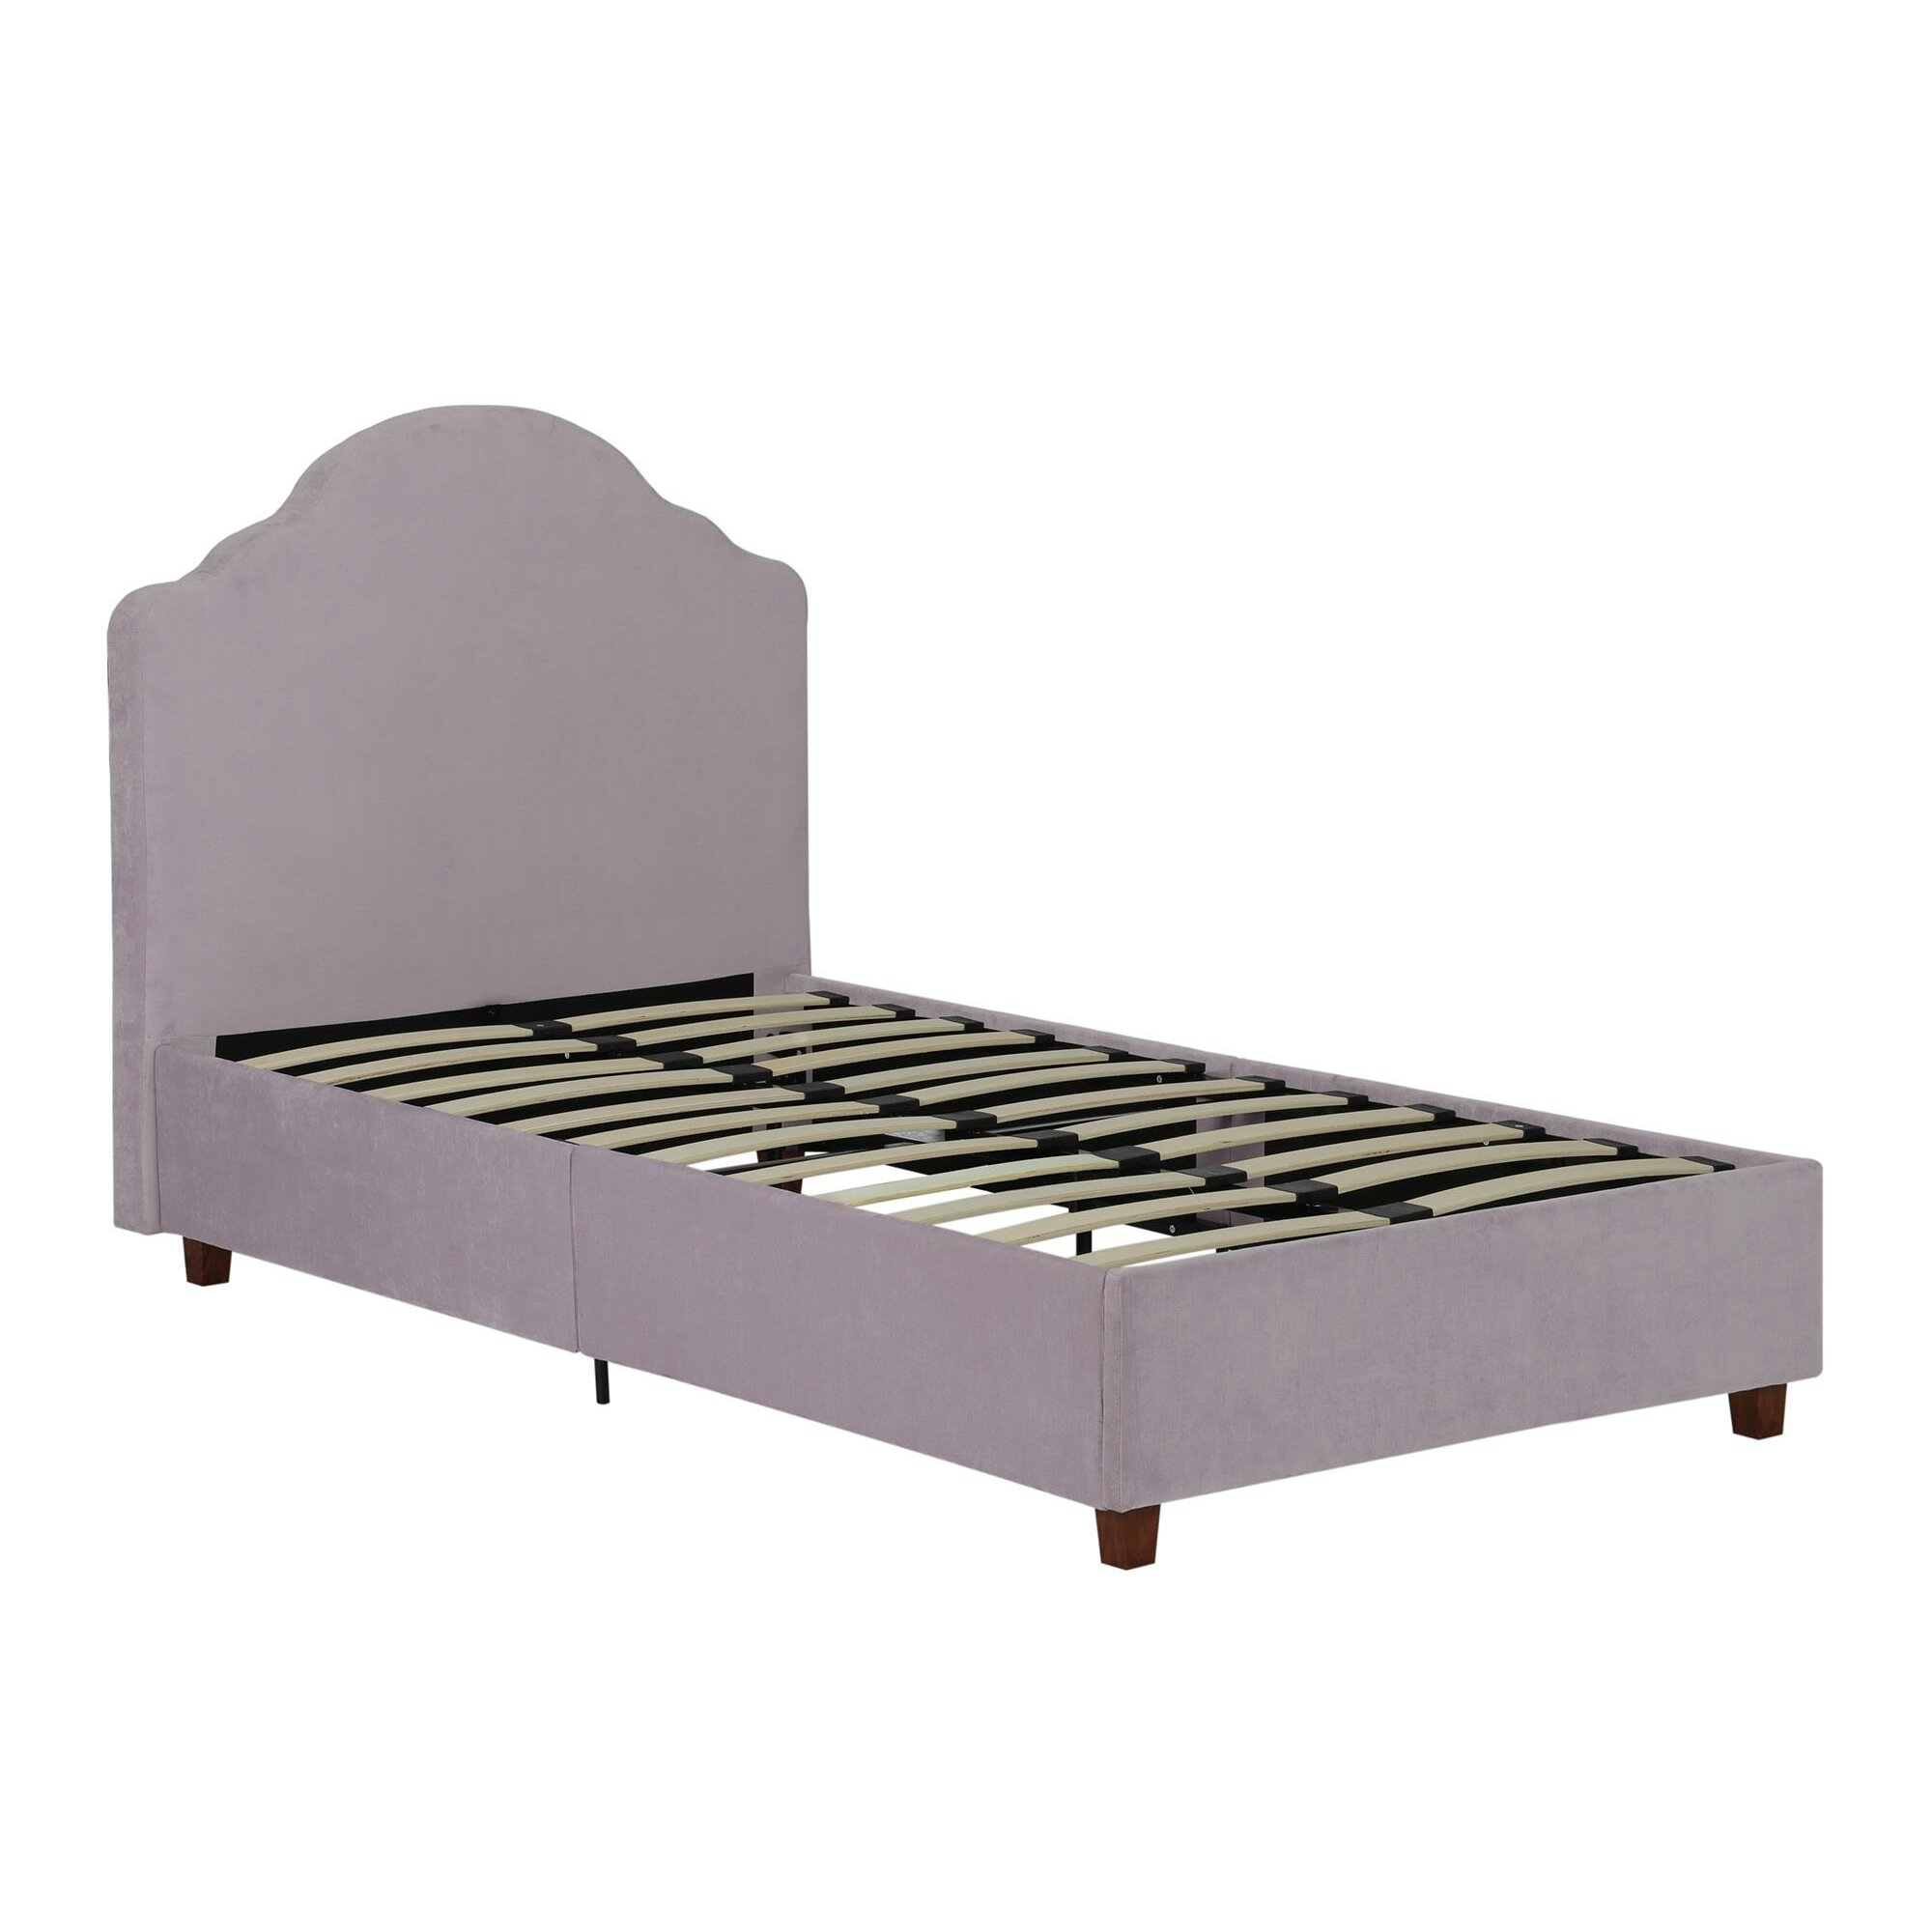 viv rae annie twin upholstered platform bed u0026 reviews wayfair - Wayfair Platform Bed